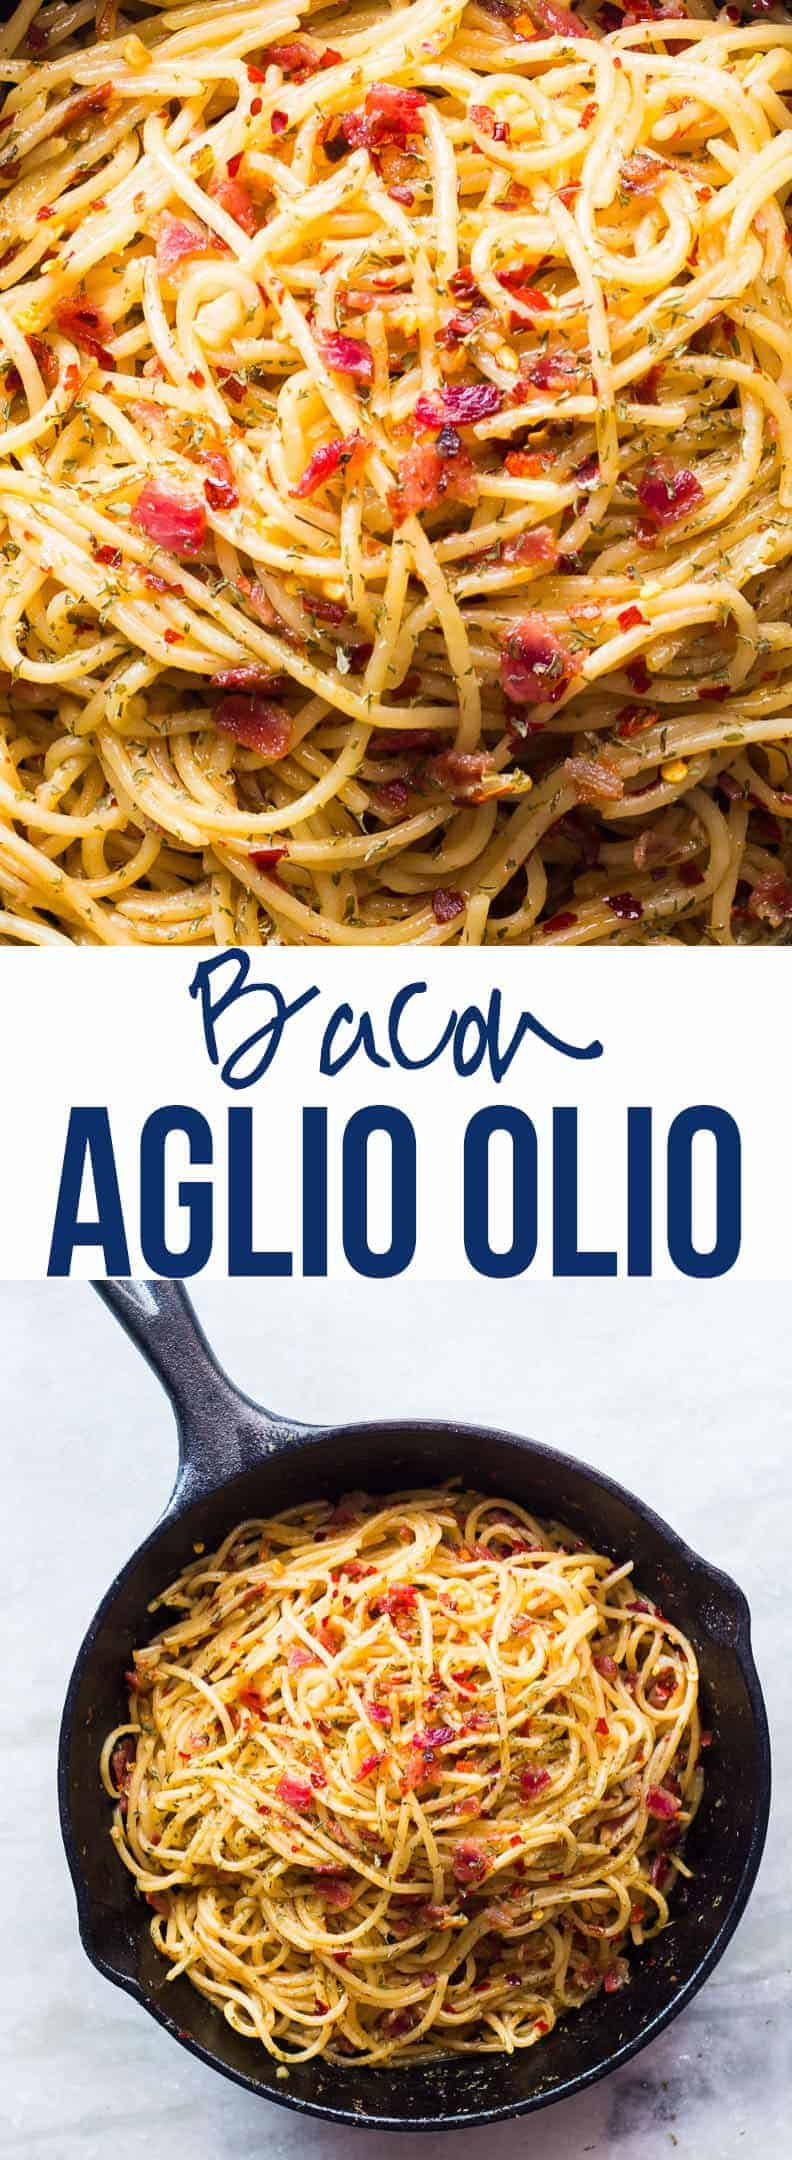 This 5 Ingredient Bacon Spaghetti Aglio Olio makes for a soul filling meal. It will take you 20 minutes to put this together but if the spaghetti is boiled, its super quick! The only pre-requisite is good quality of ingredients which are a total of 5! Cook the pasta al dente for best results! If you\'re a vegetarian, you can skip the bacon. #myfoodstory #recipe #pasta #spaghetti #bacon